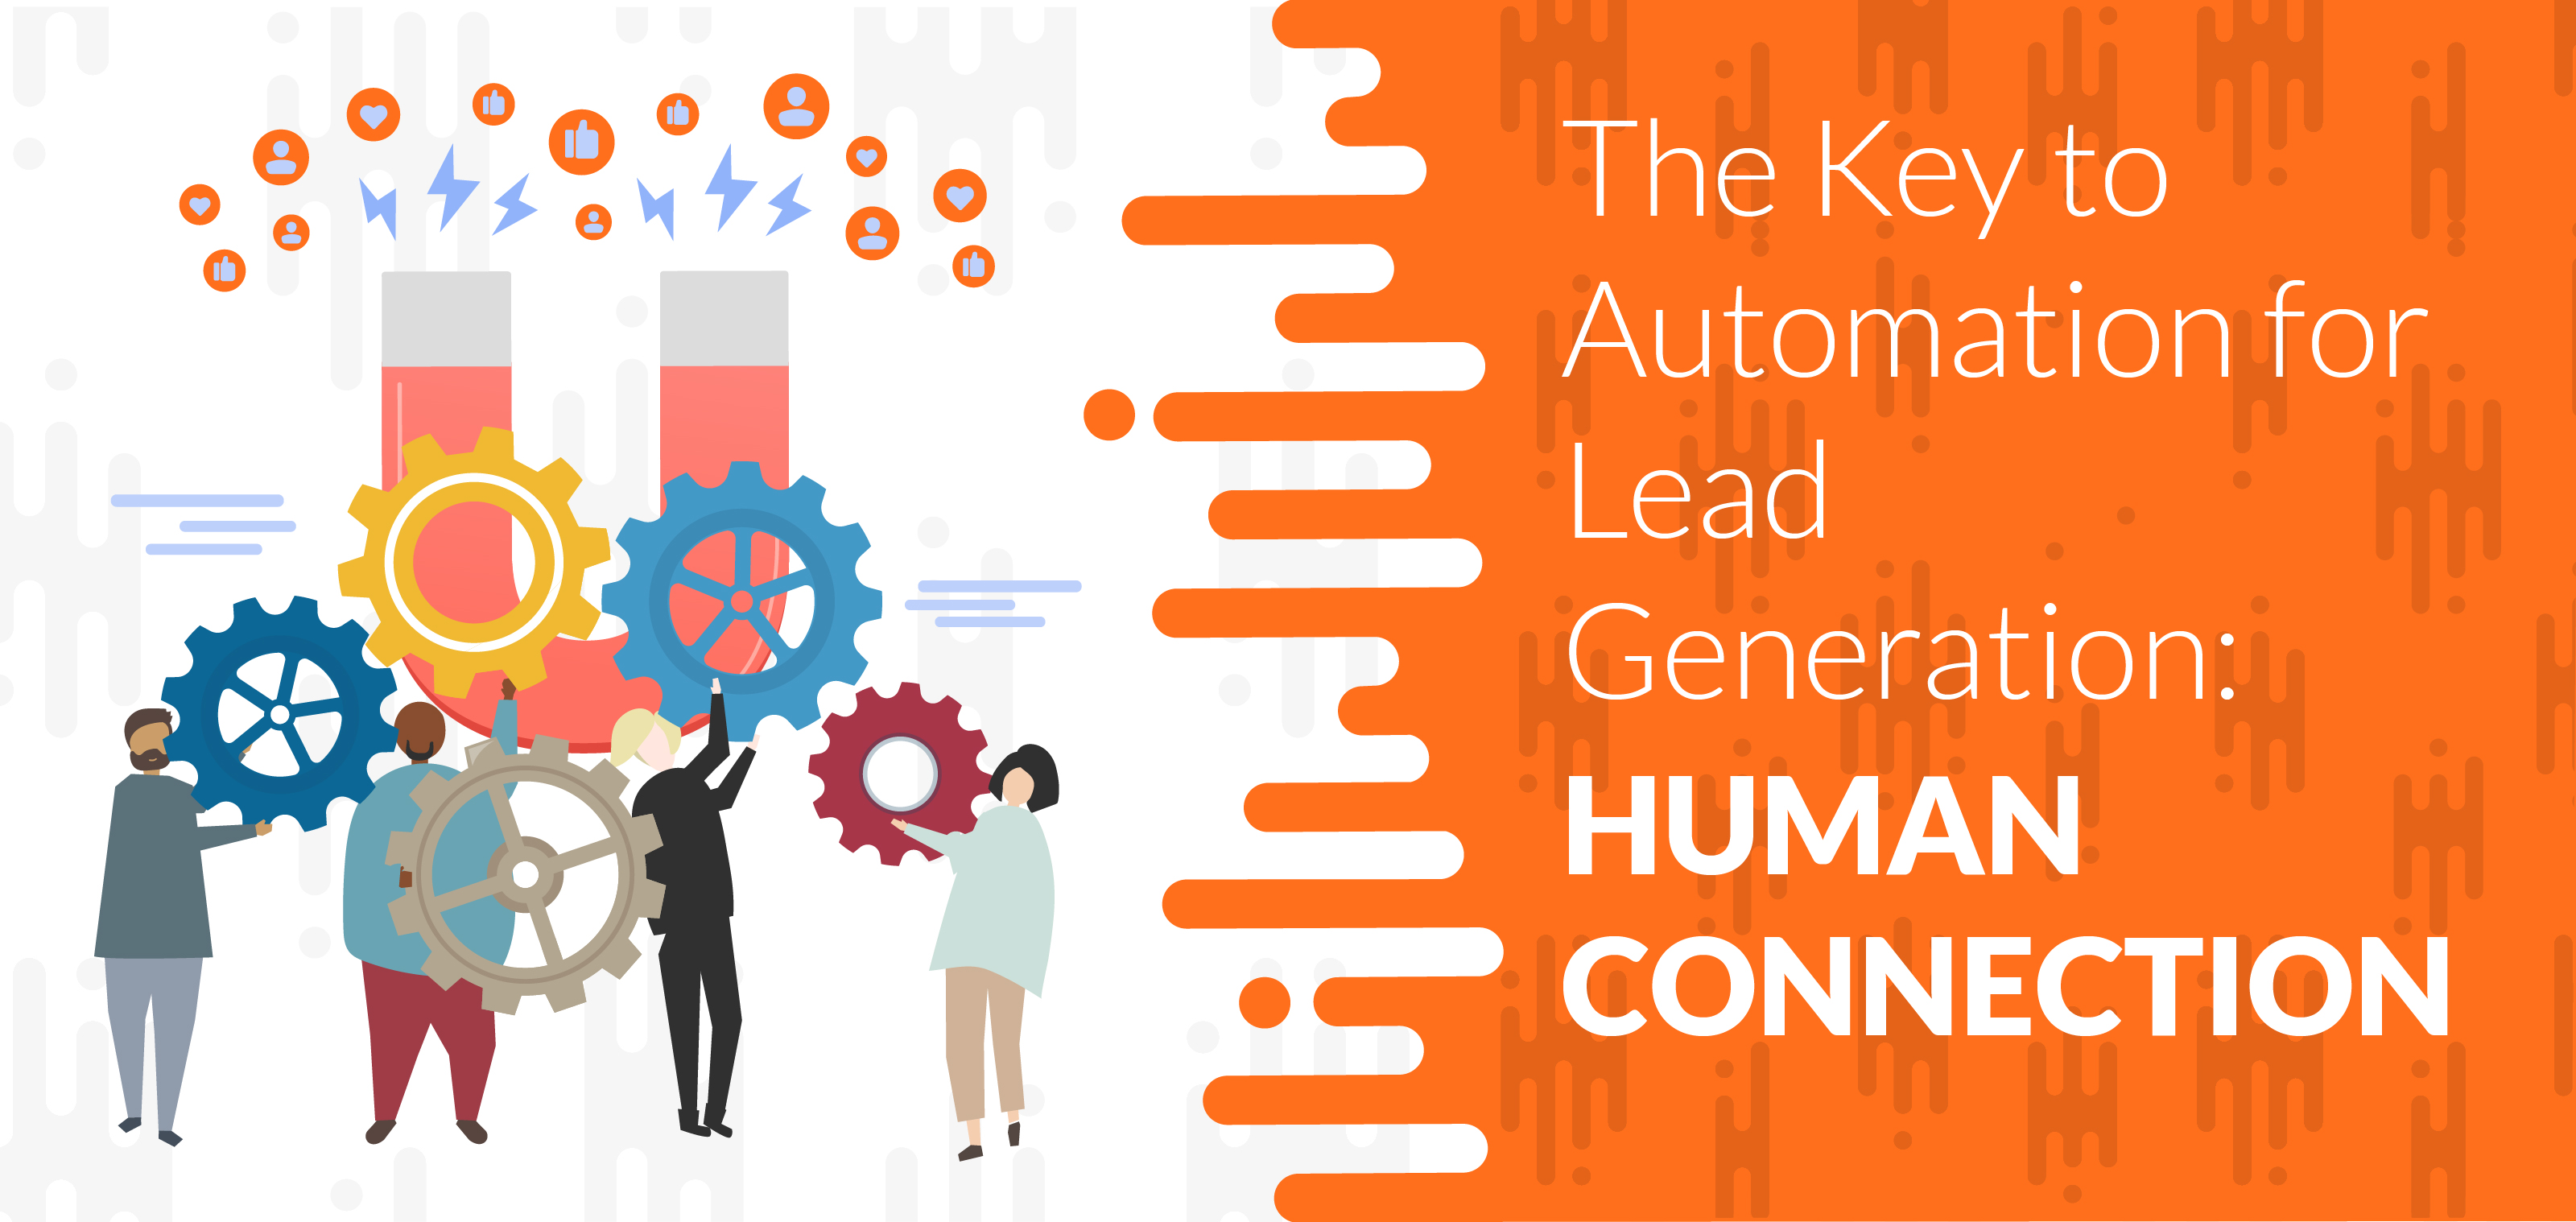 The Key to Automation for Lead Generation: Human Connection